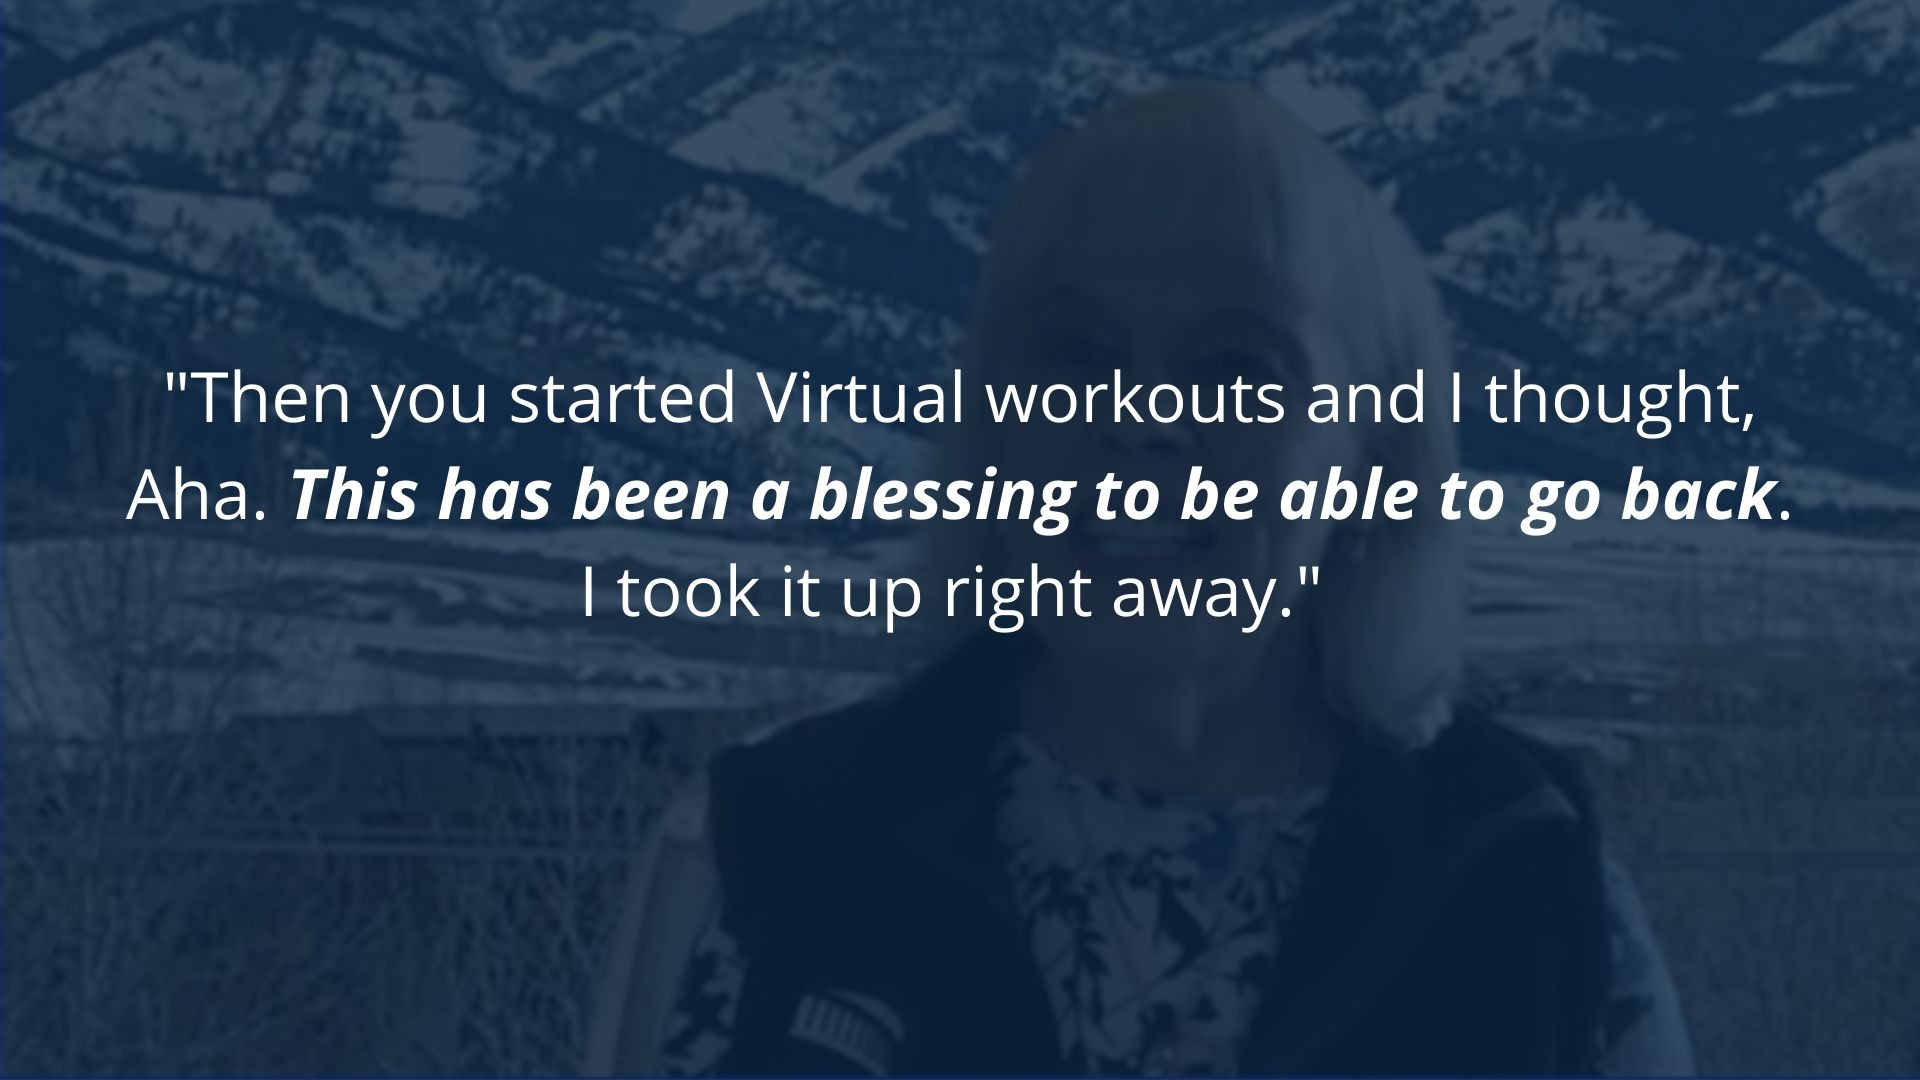 Woman says Virtual workouts have been a blessing